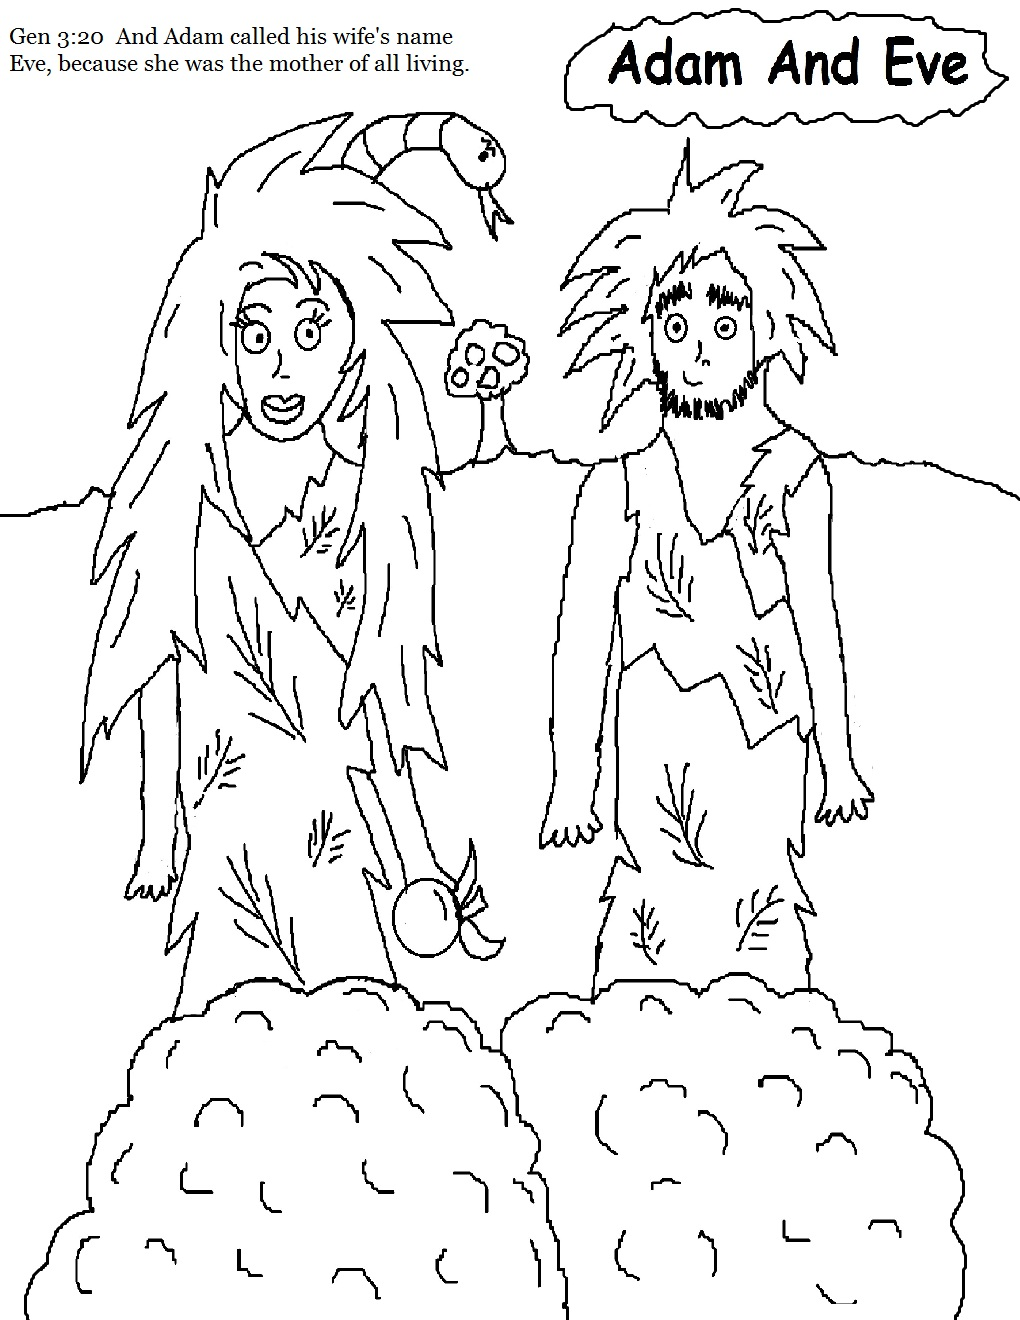 Adam And Eve Coloring Pages Enchanting Adam And Eve Coloring Pages Inspiration Design